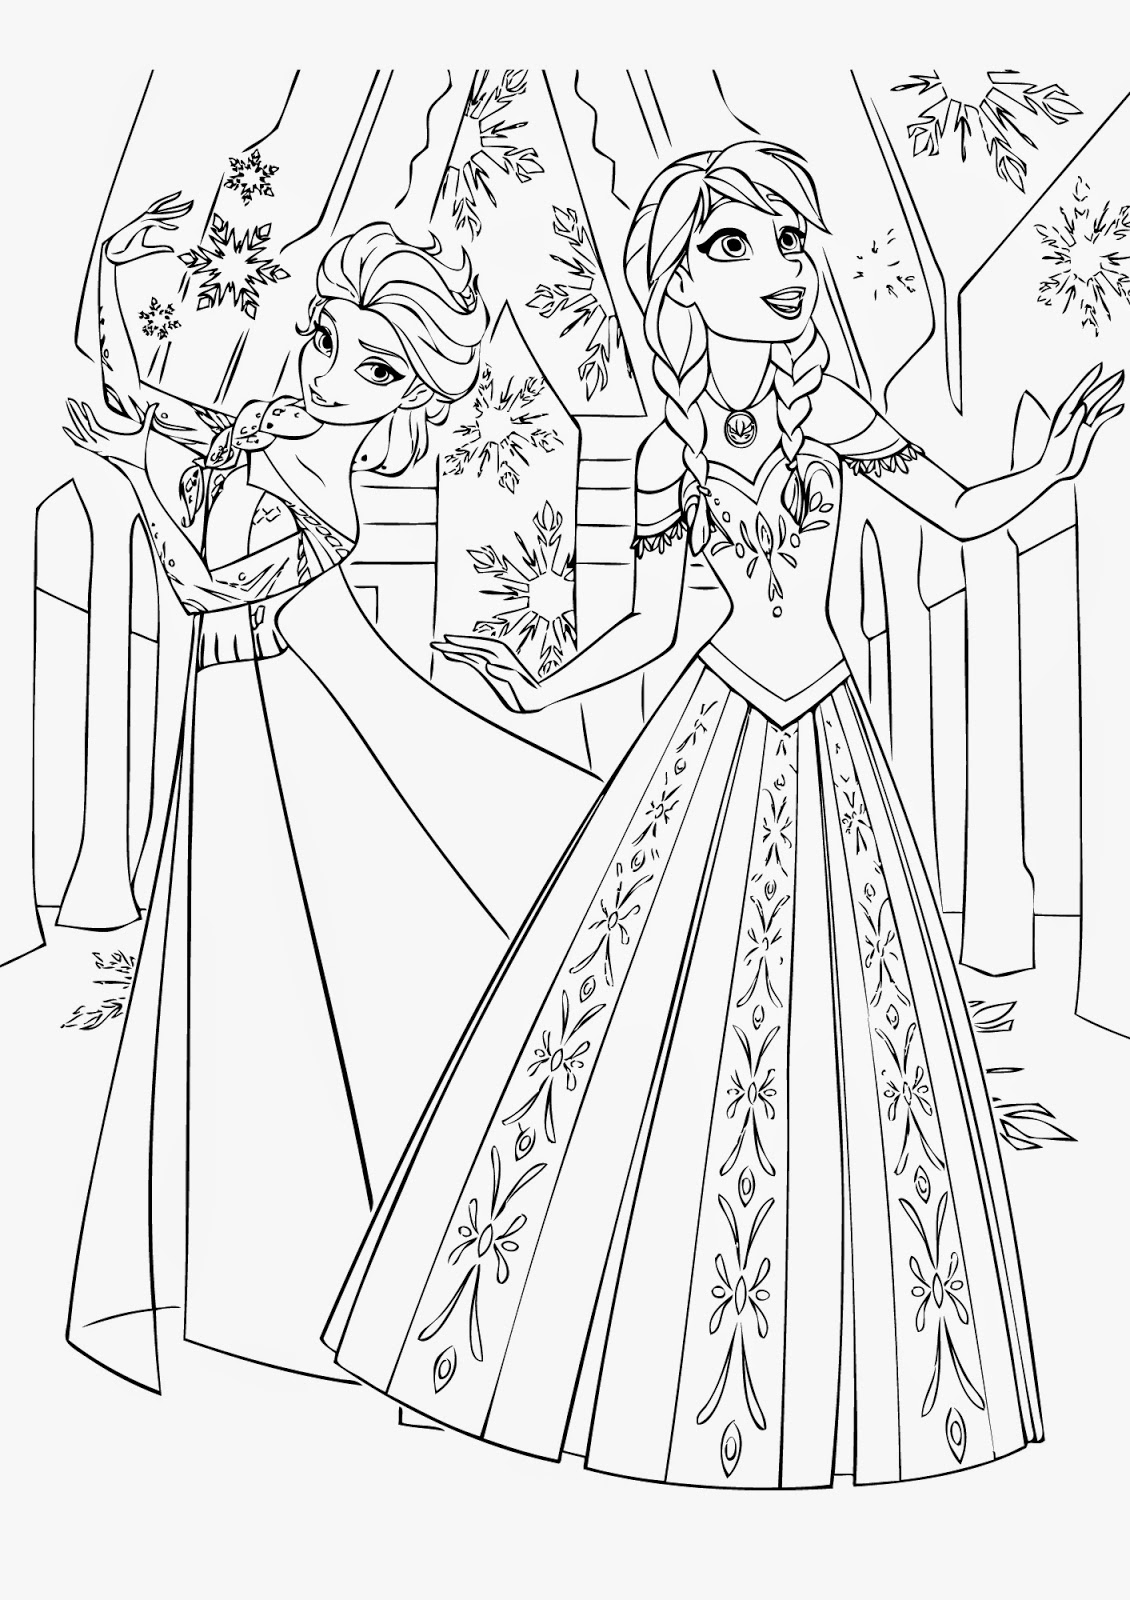 coloring pages frozen new frozen 2 coloring pages with elsa youloveitcom coloring frozen pages